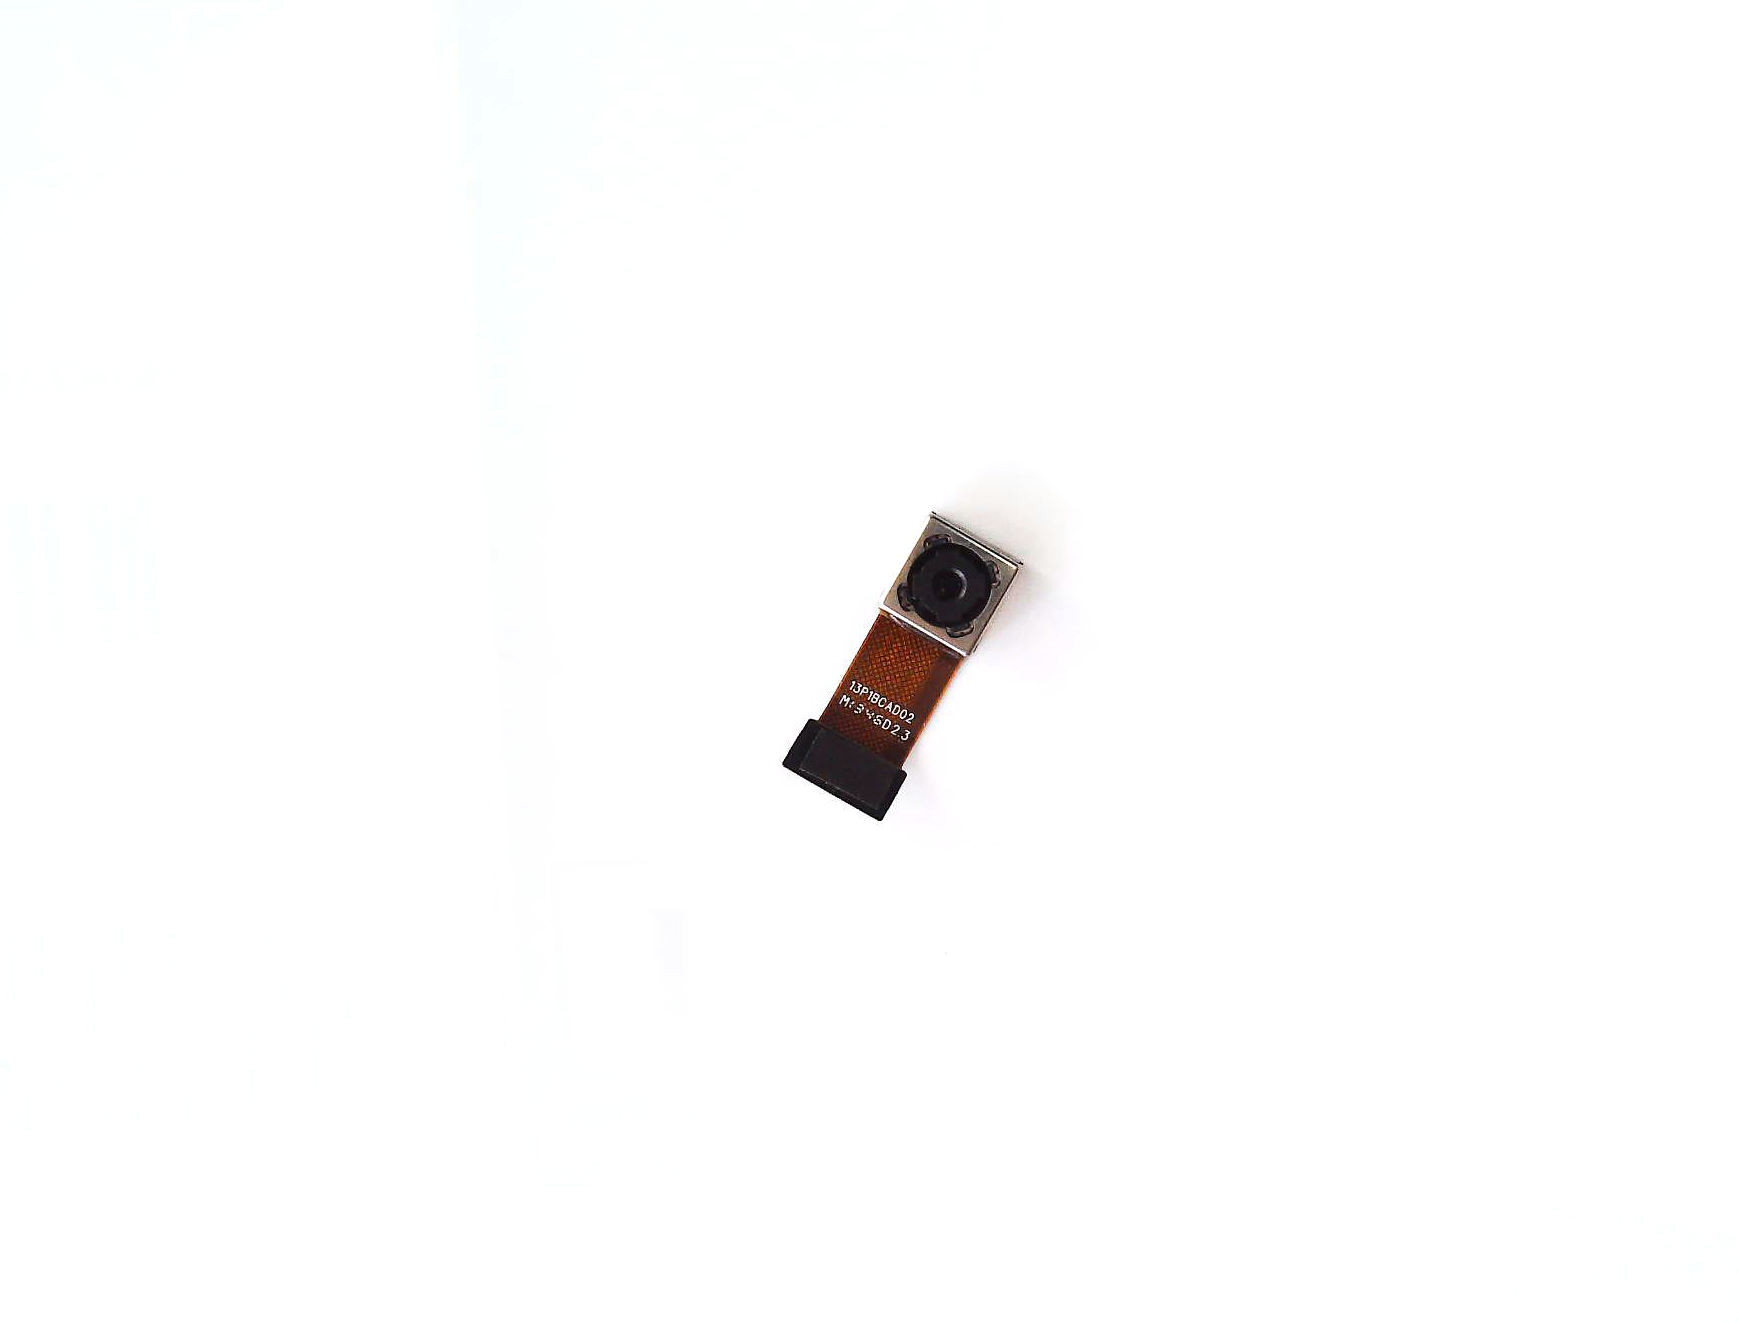 Repair Parts Photo Camera Module Replacement for Lenovo K910e Cellphone